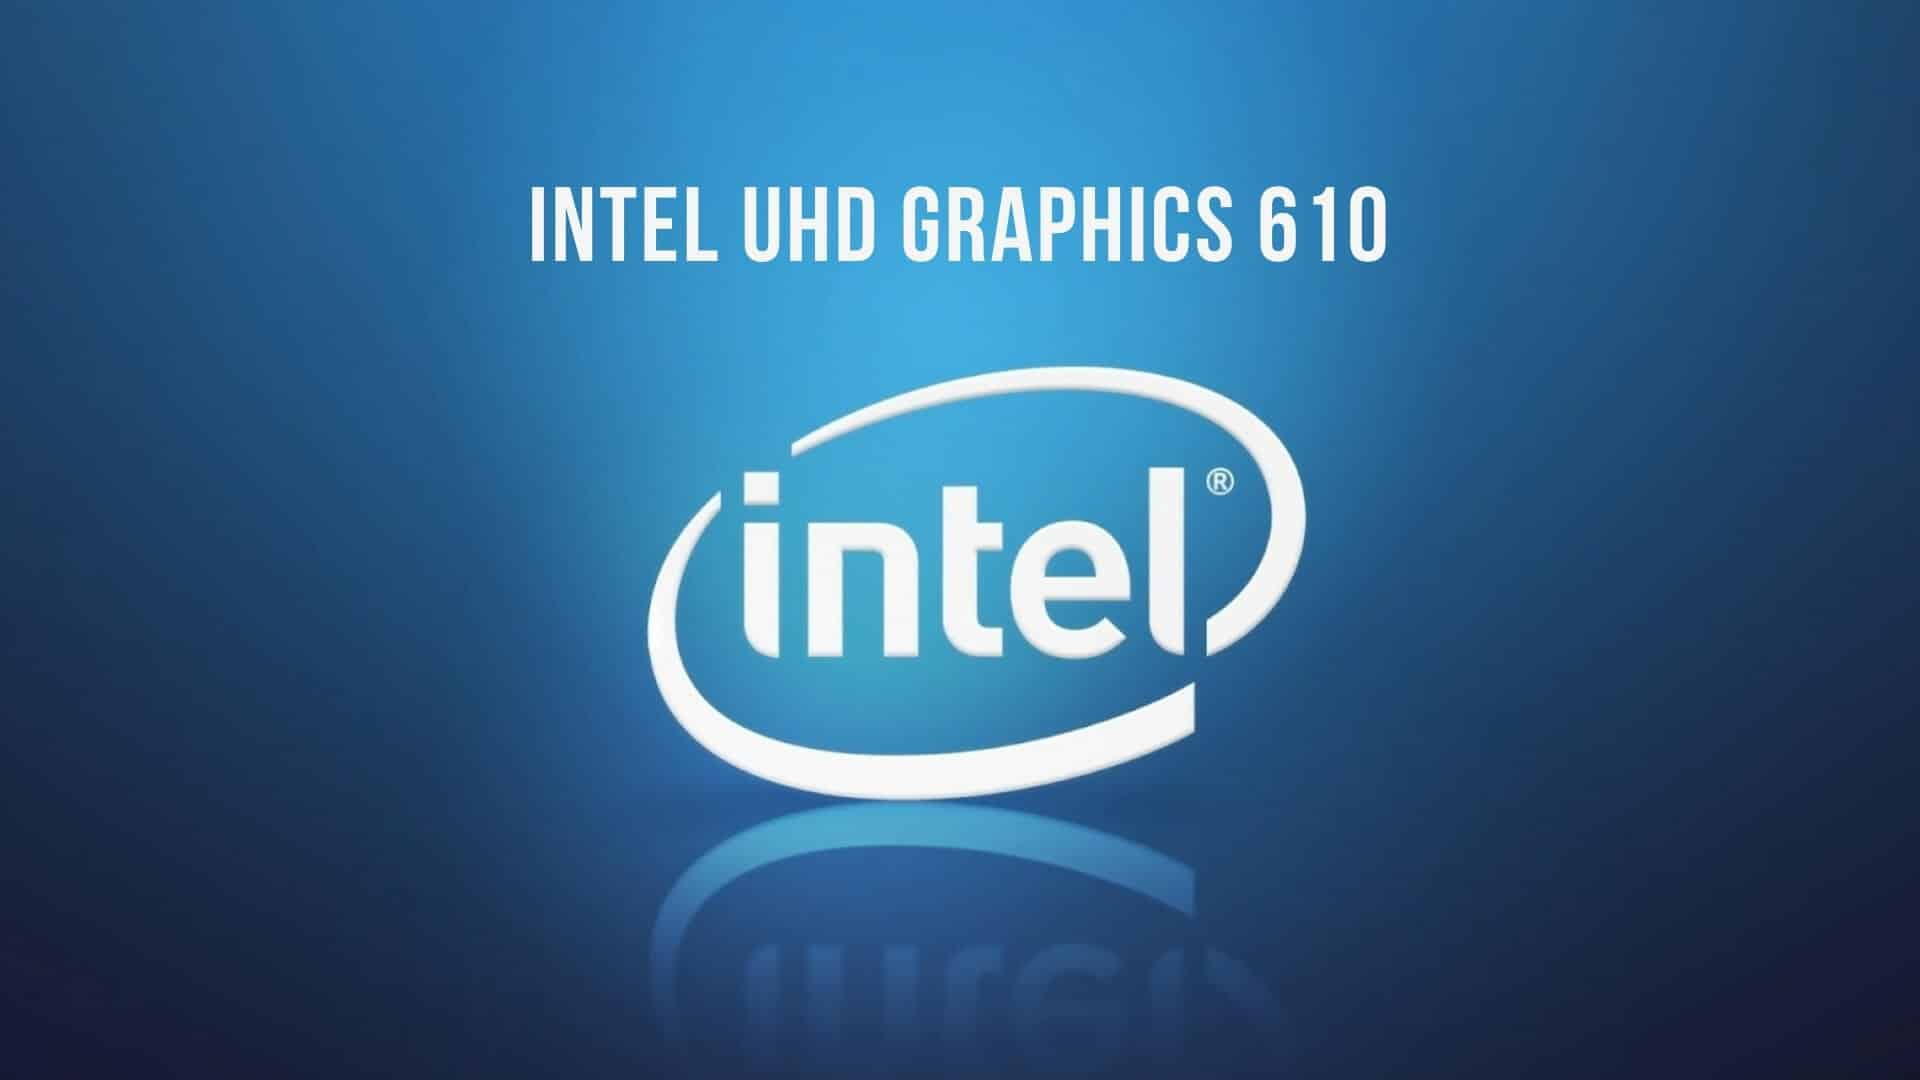 Intel UHD Graphics 610